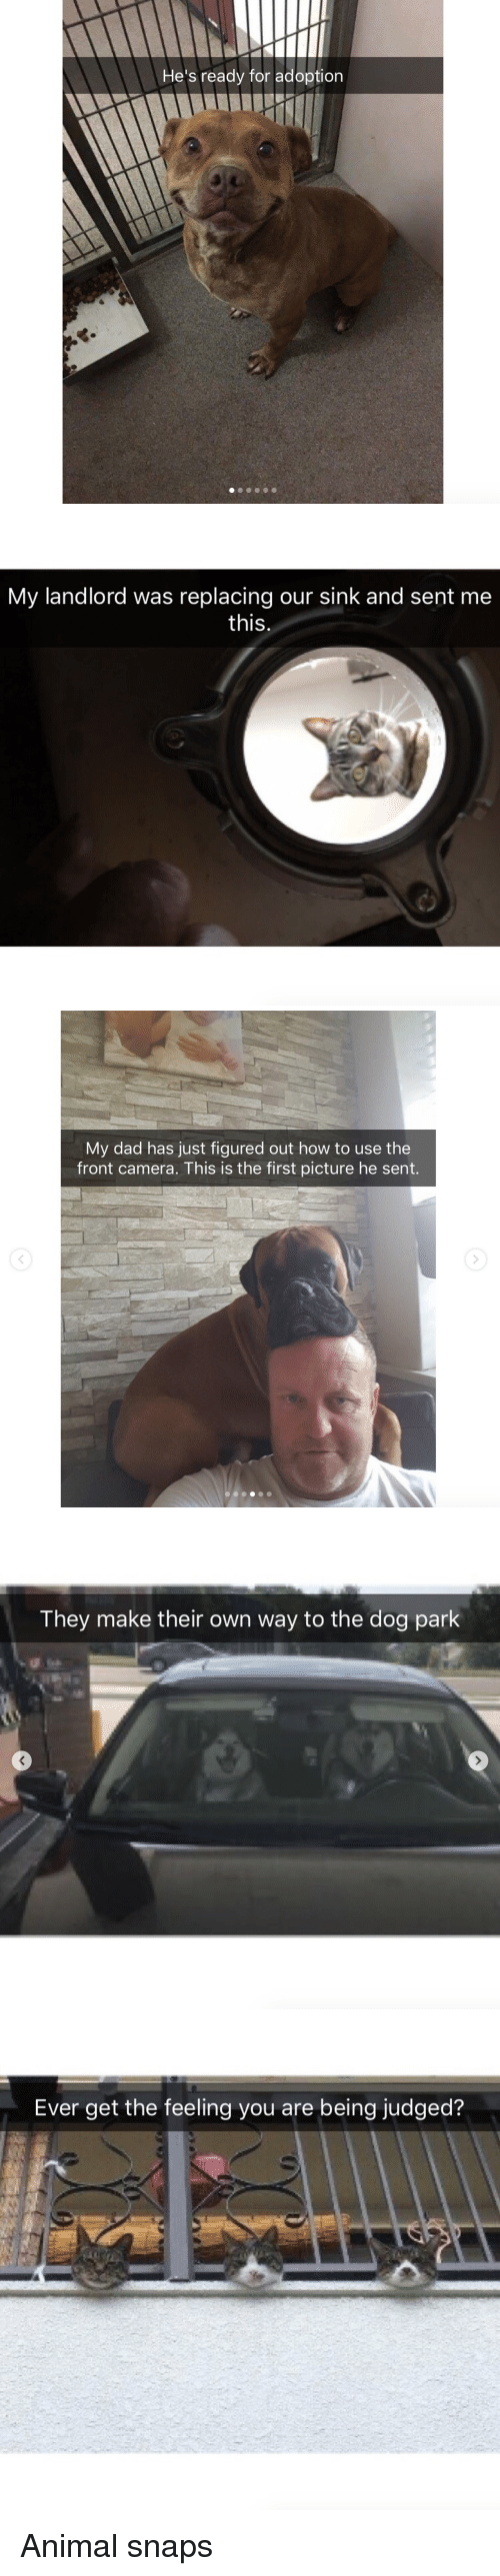 Hes Ready: He's ready for adoption   My landlord was replacing our sink and sent me  this  C)   My dad has just figured out how to use the  front camera. This is the first picture he sent.   They make their own way to the dog park   Ever get the feeling you are being judged? <p>Animal snaps<br/></p>